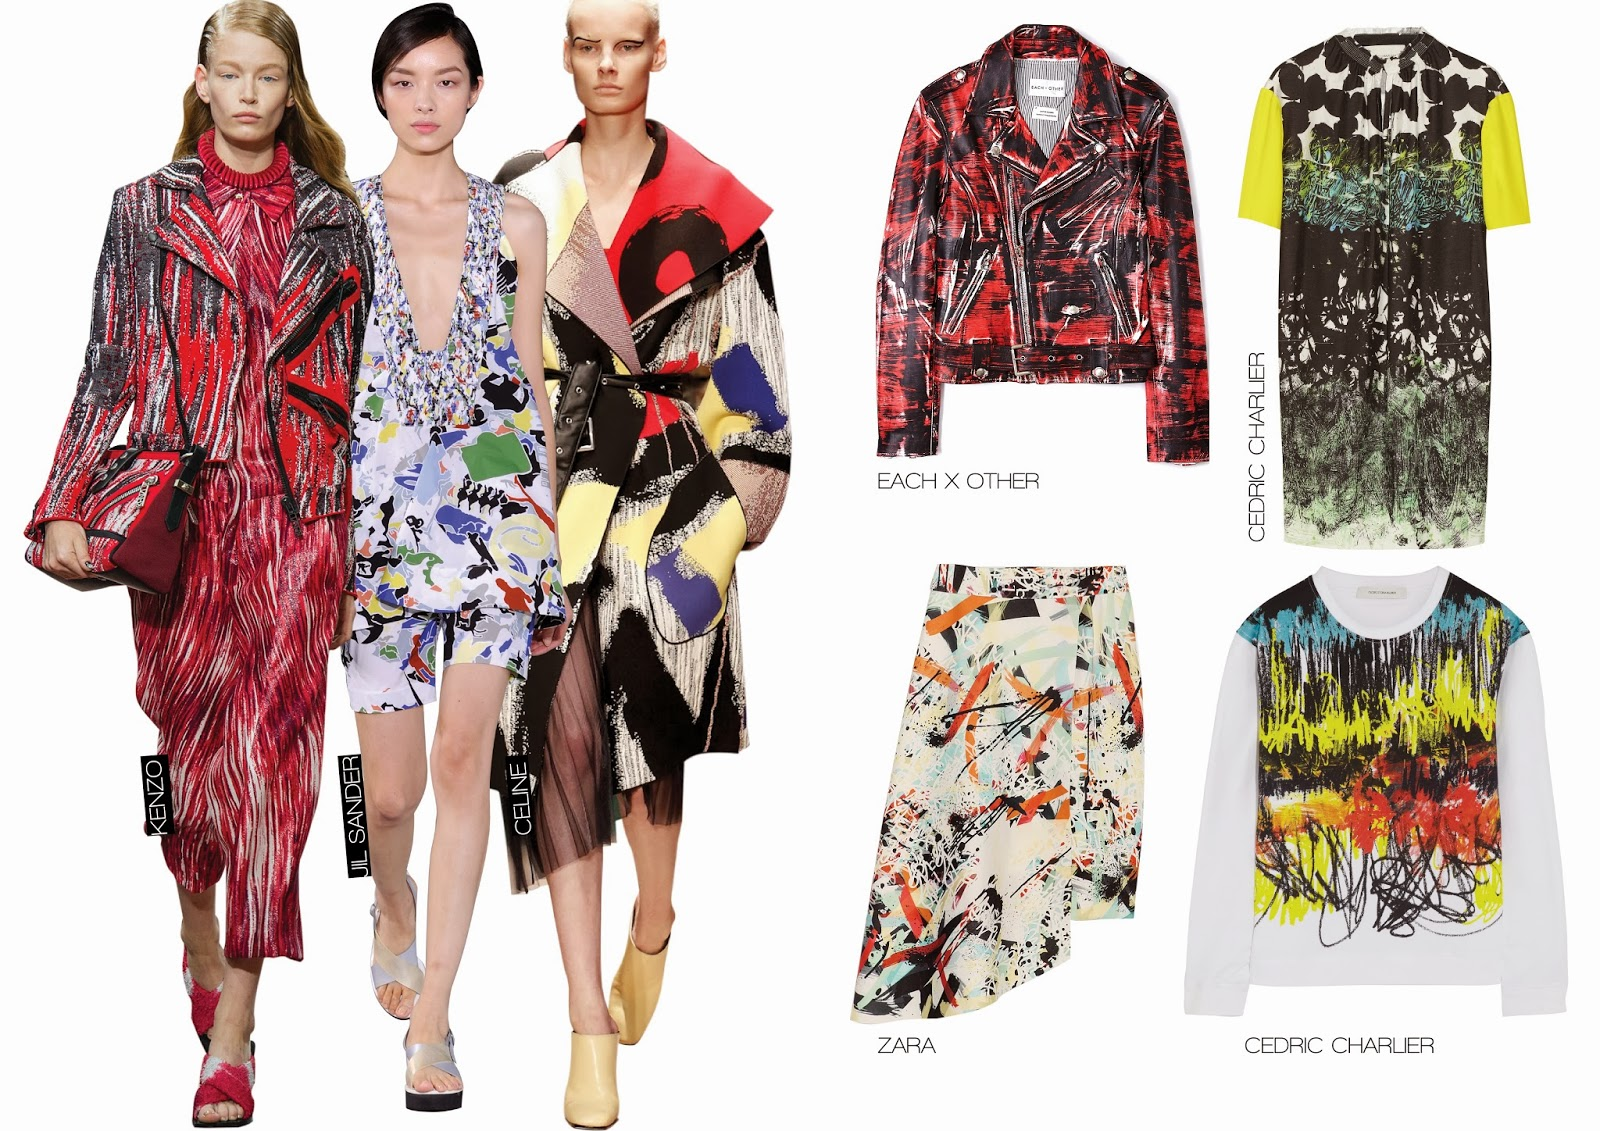 SPRING/SUMMER 2014 TREND - THE ART OF FASHION